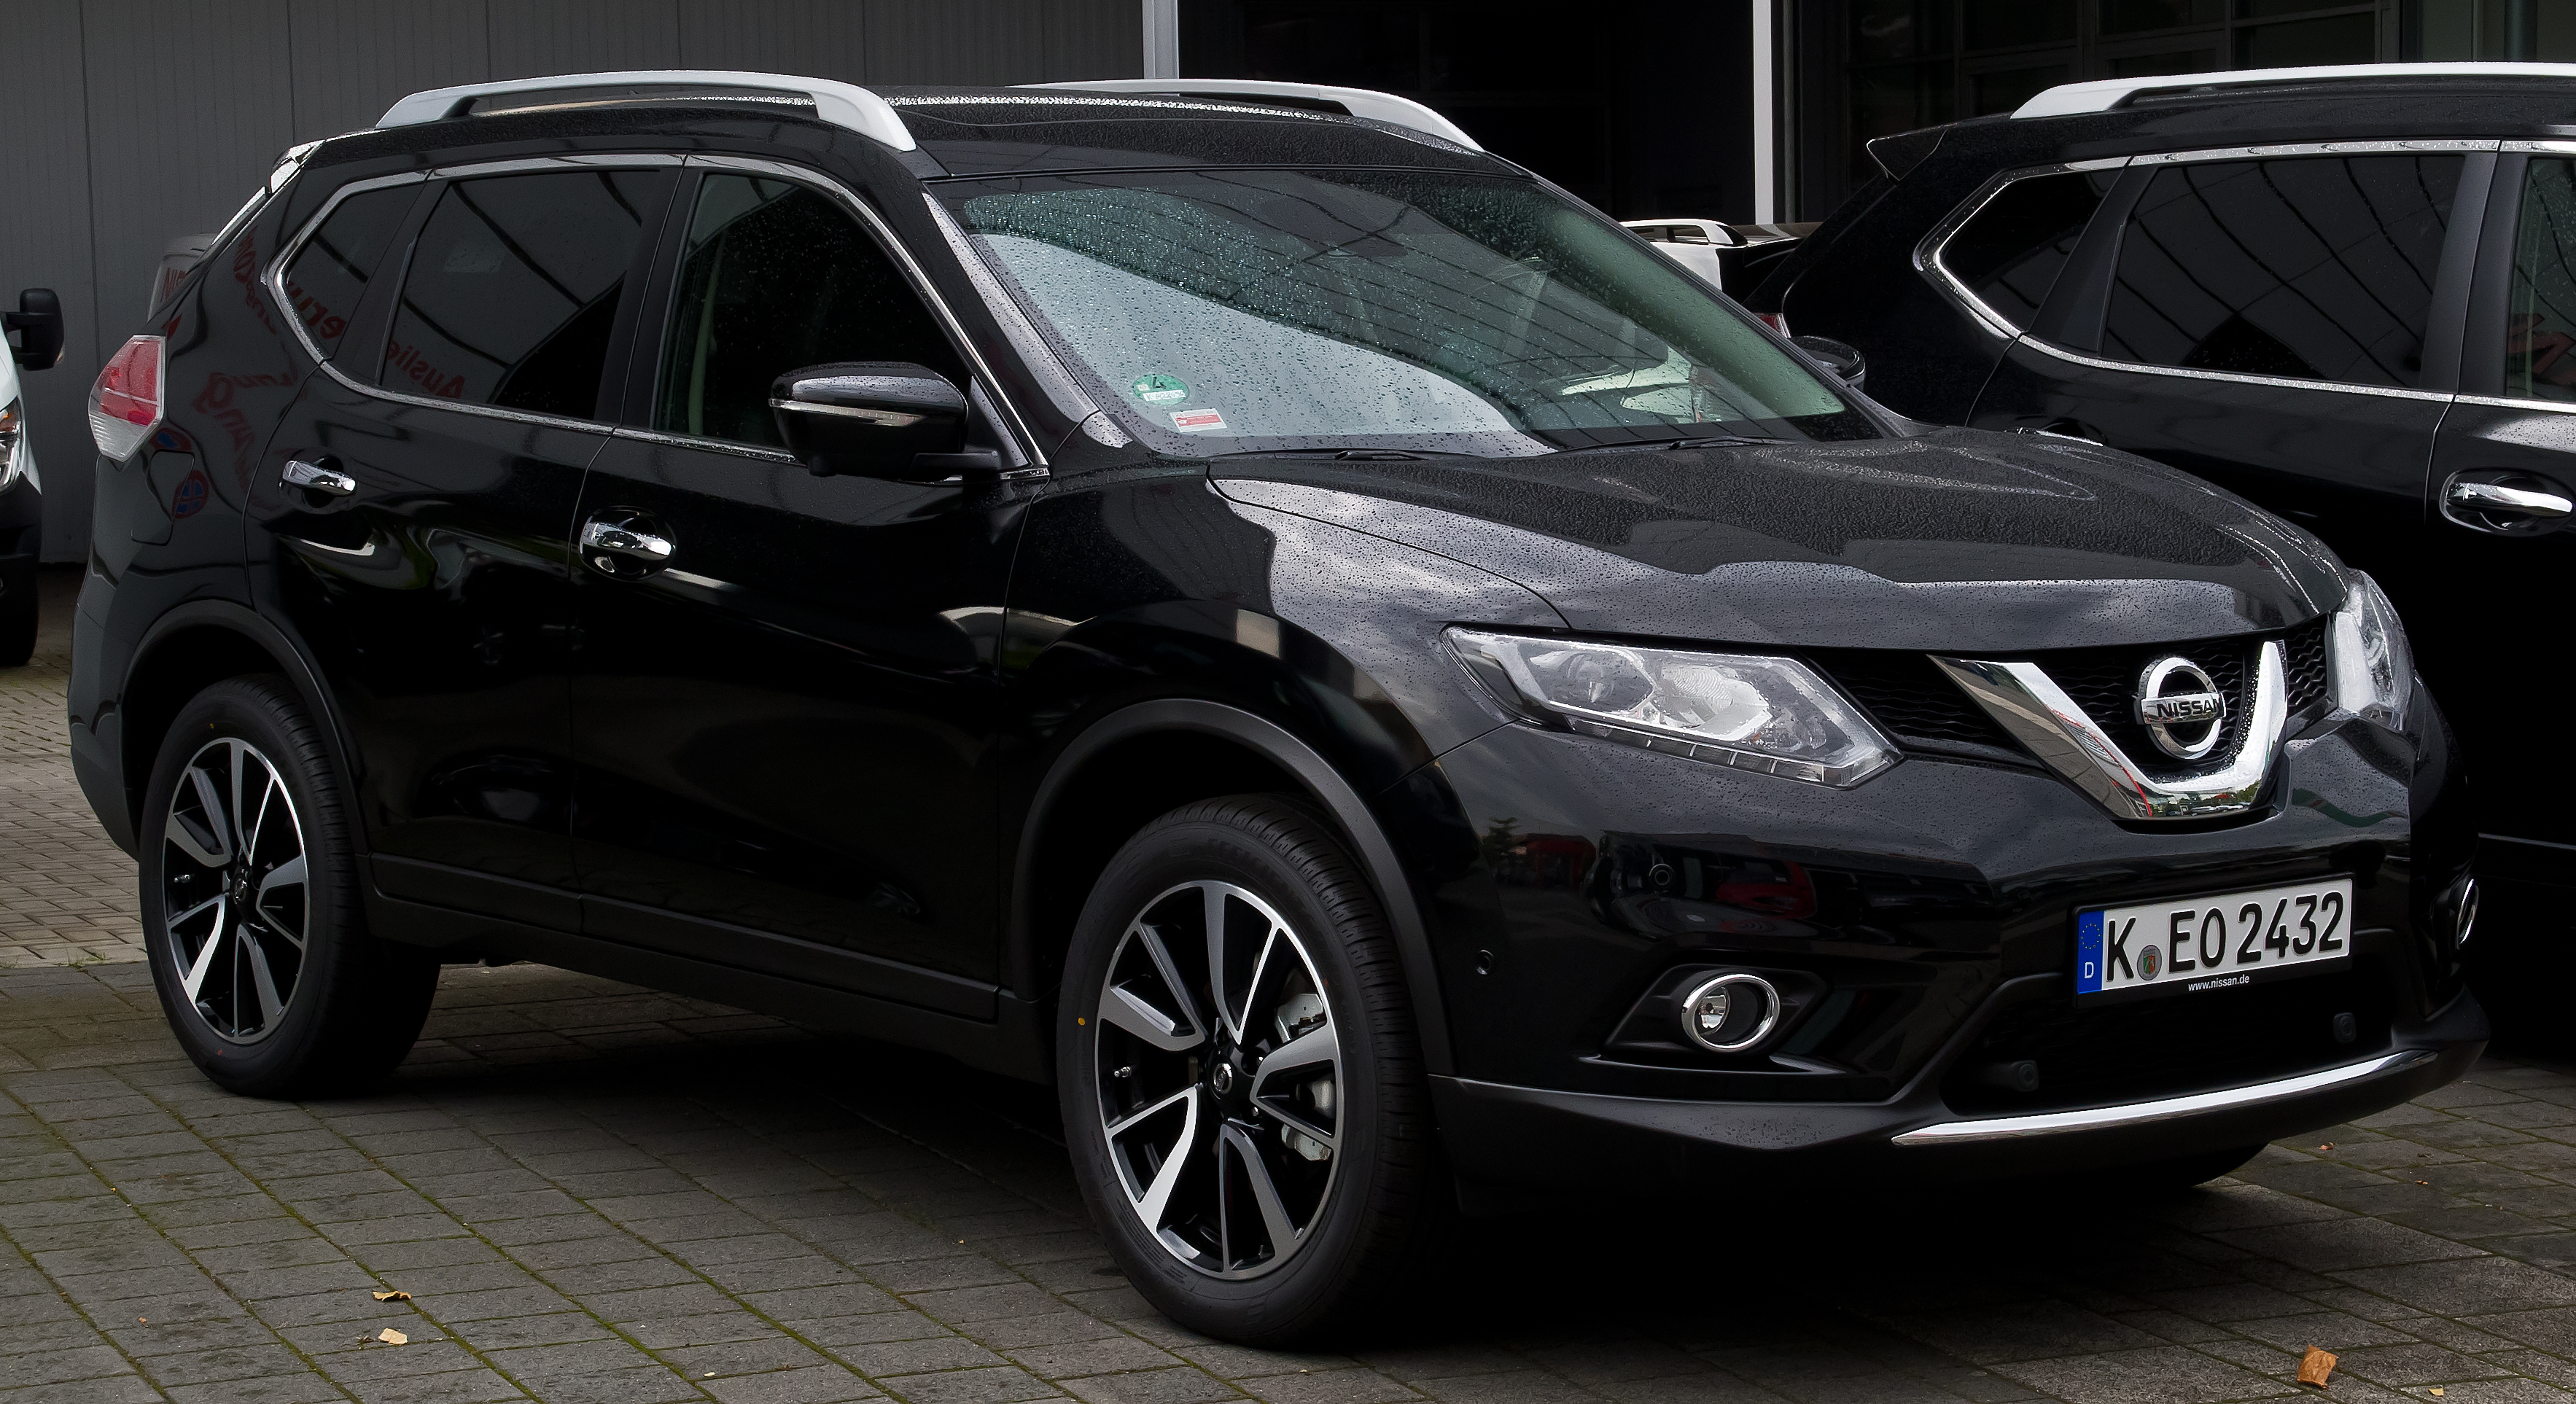 nissan x trail 1 6 dci all mode 4x4i tekna t32 frontansicht 24 august 2014. Black Bedroom Furniture Sets. Home Design Ideas